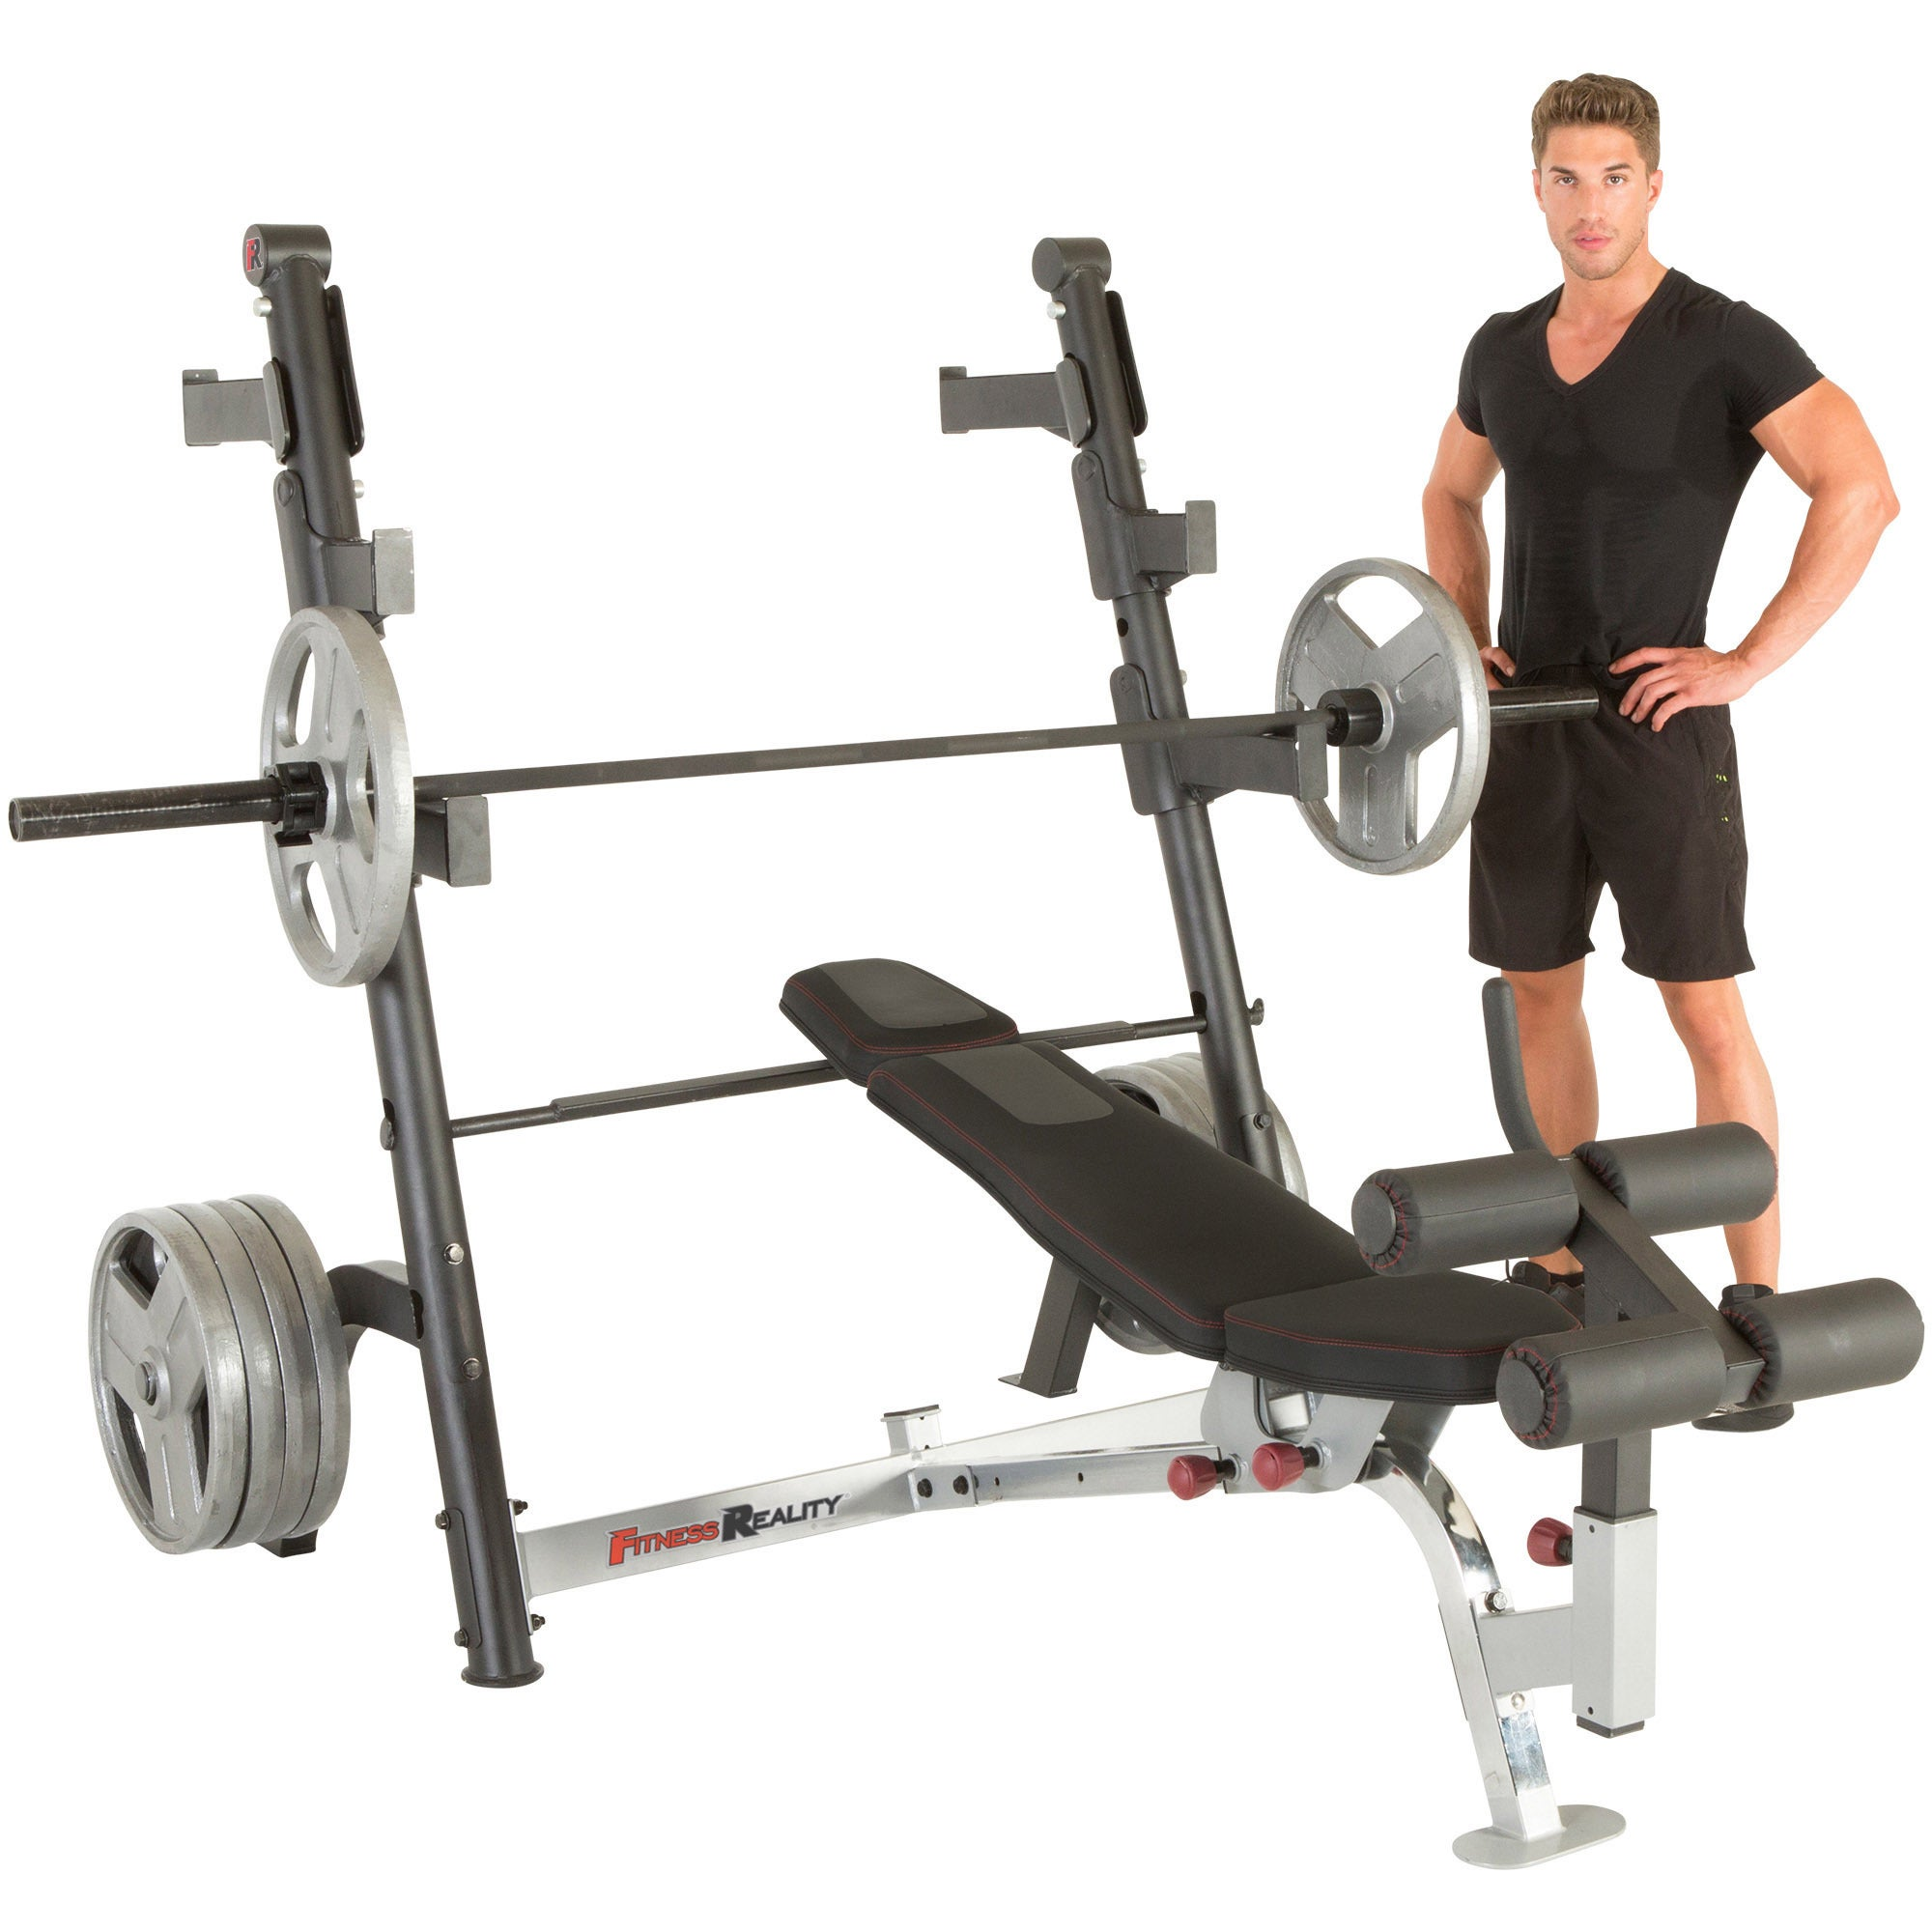 weight golds with uk amazon maxi power sports co bench olympic outdoors gym dp rack gold s deluxe